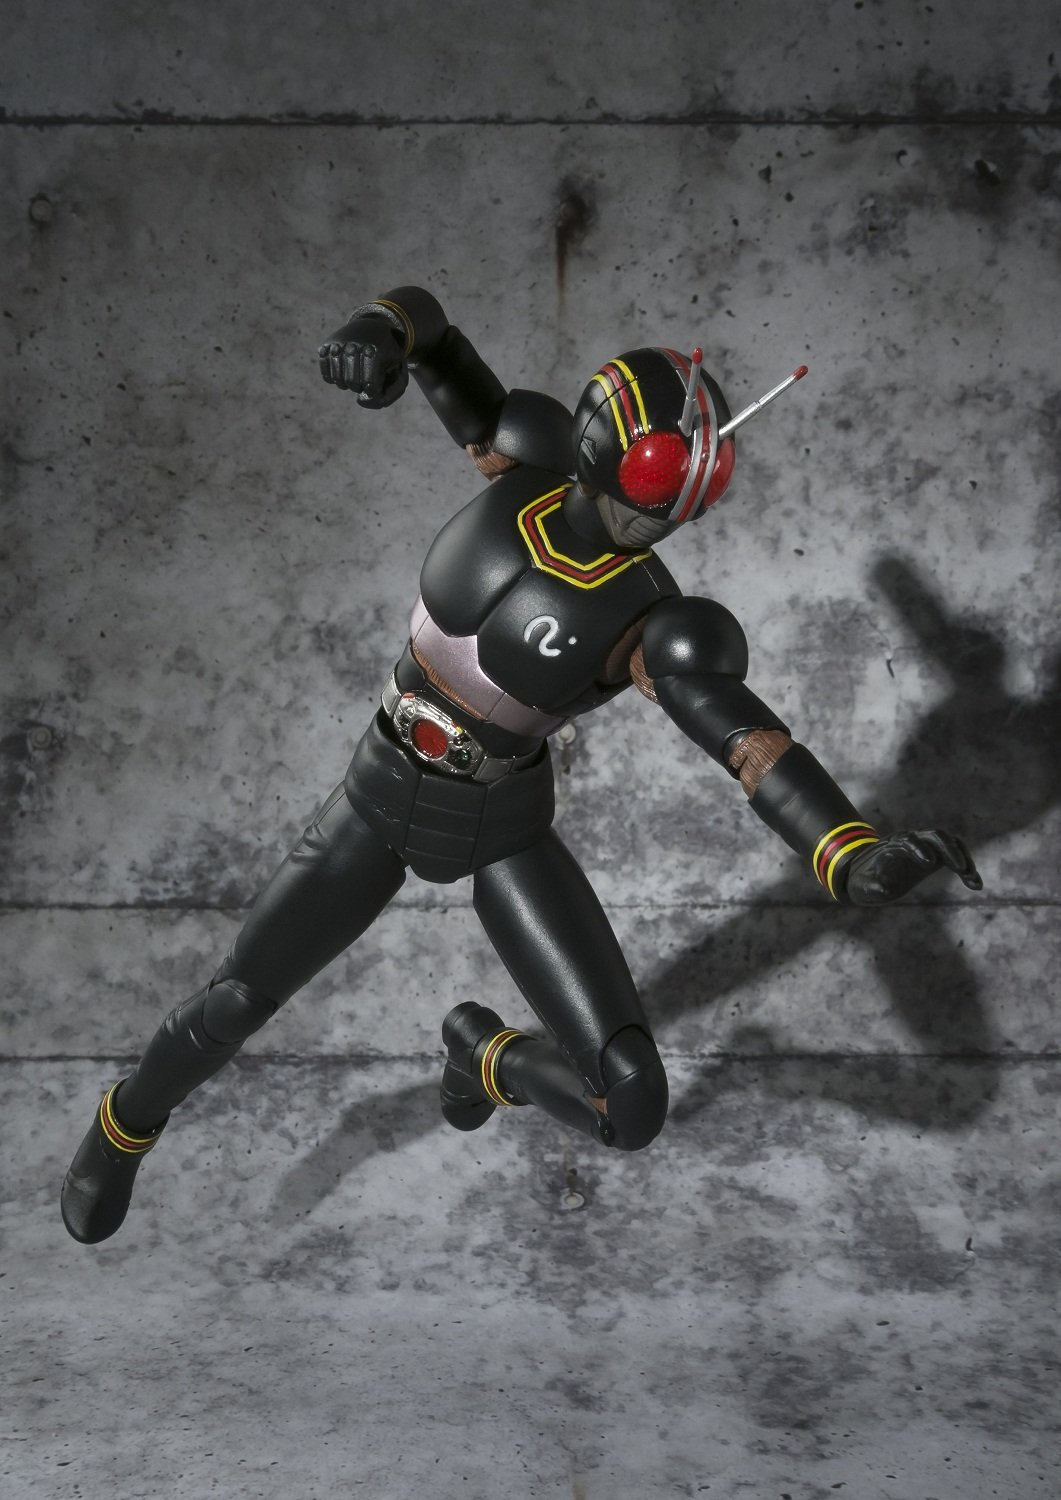 Bandai Tamashii Nations S.H Figuarts Kamen Rider Black Action Figure Bluefin Distribution Toys BAN82867